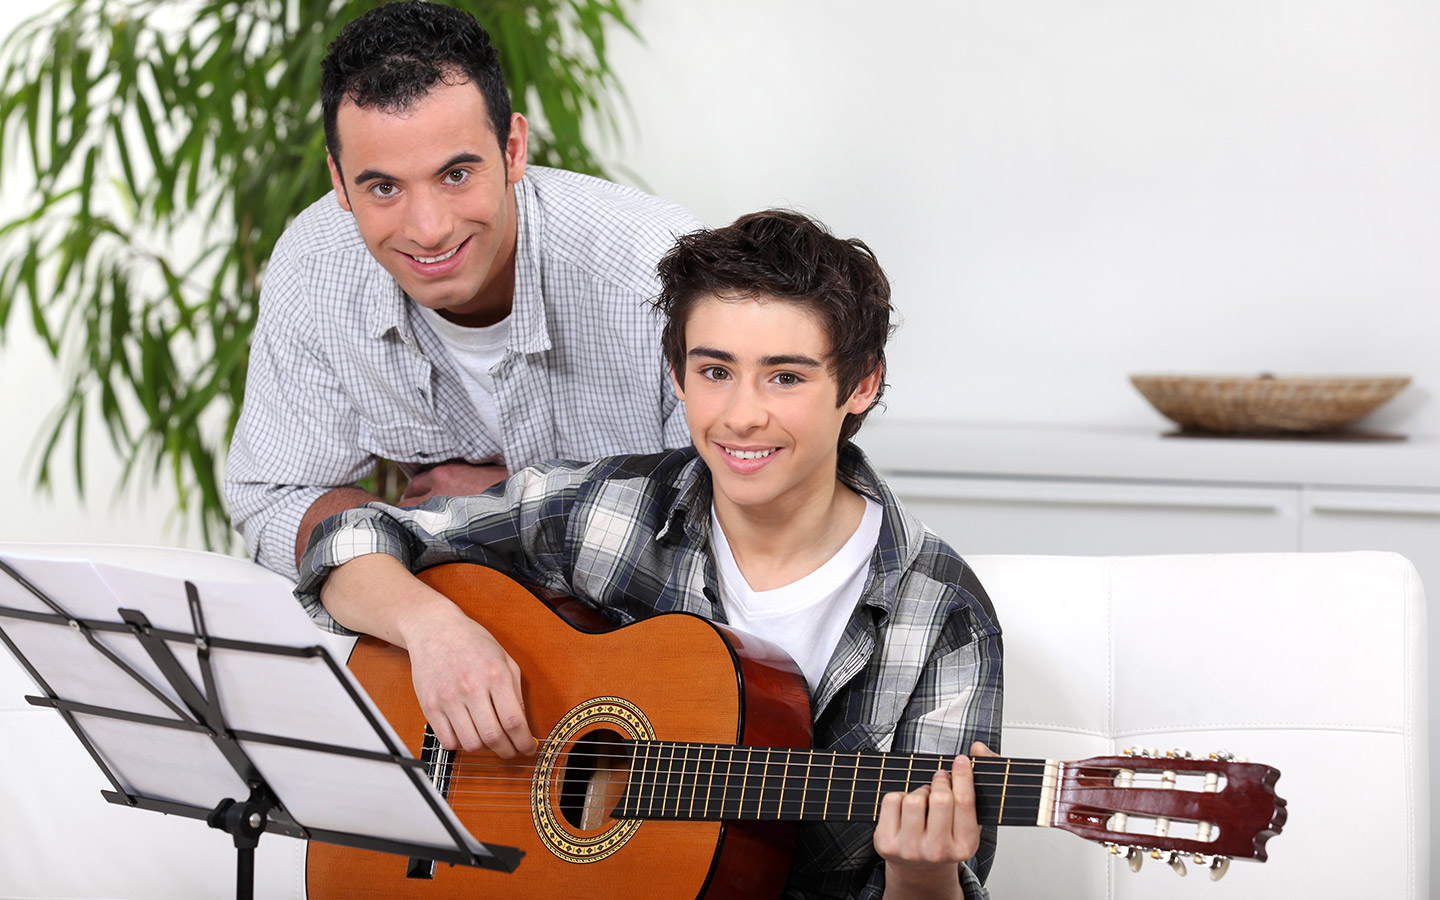 Young man with his guitar teacher